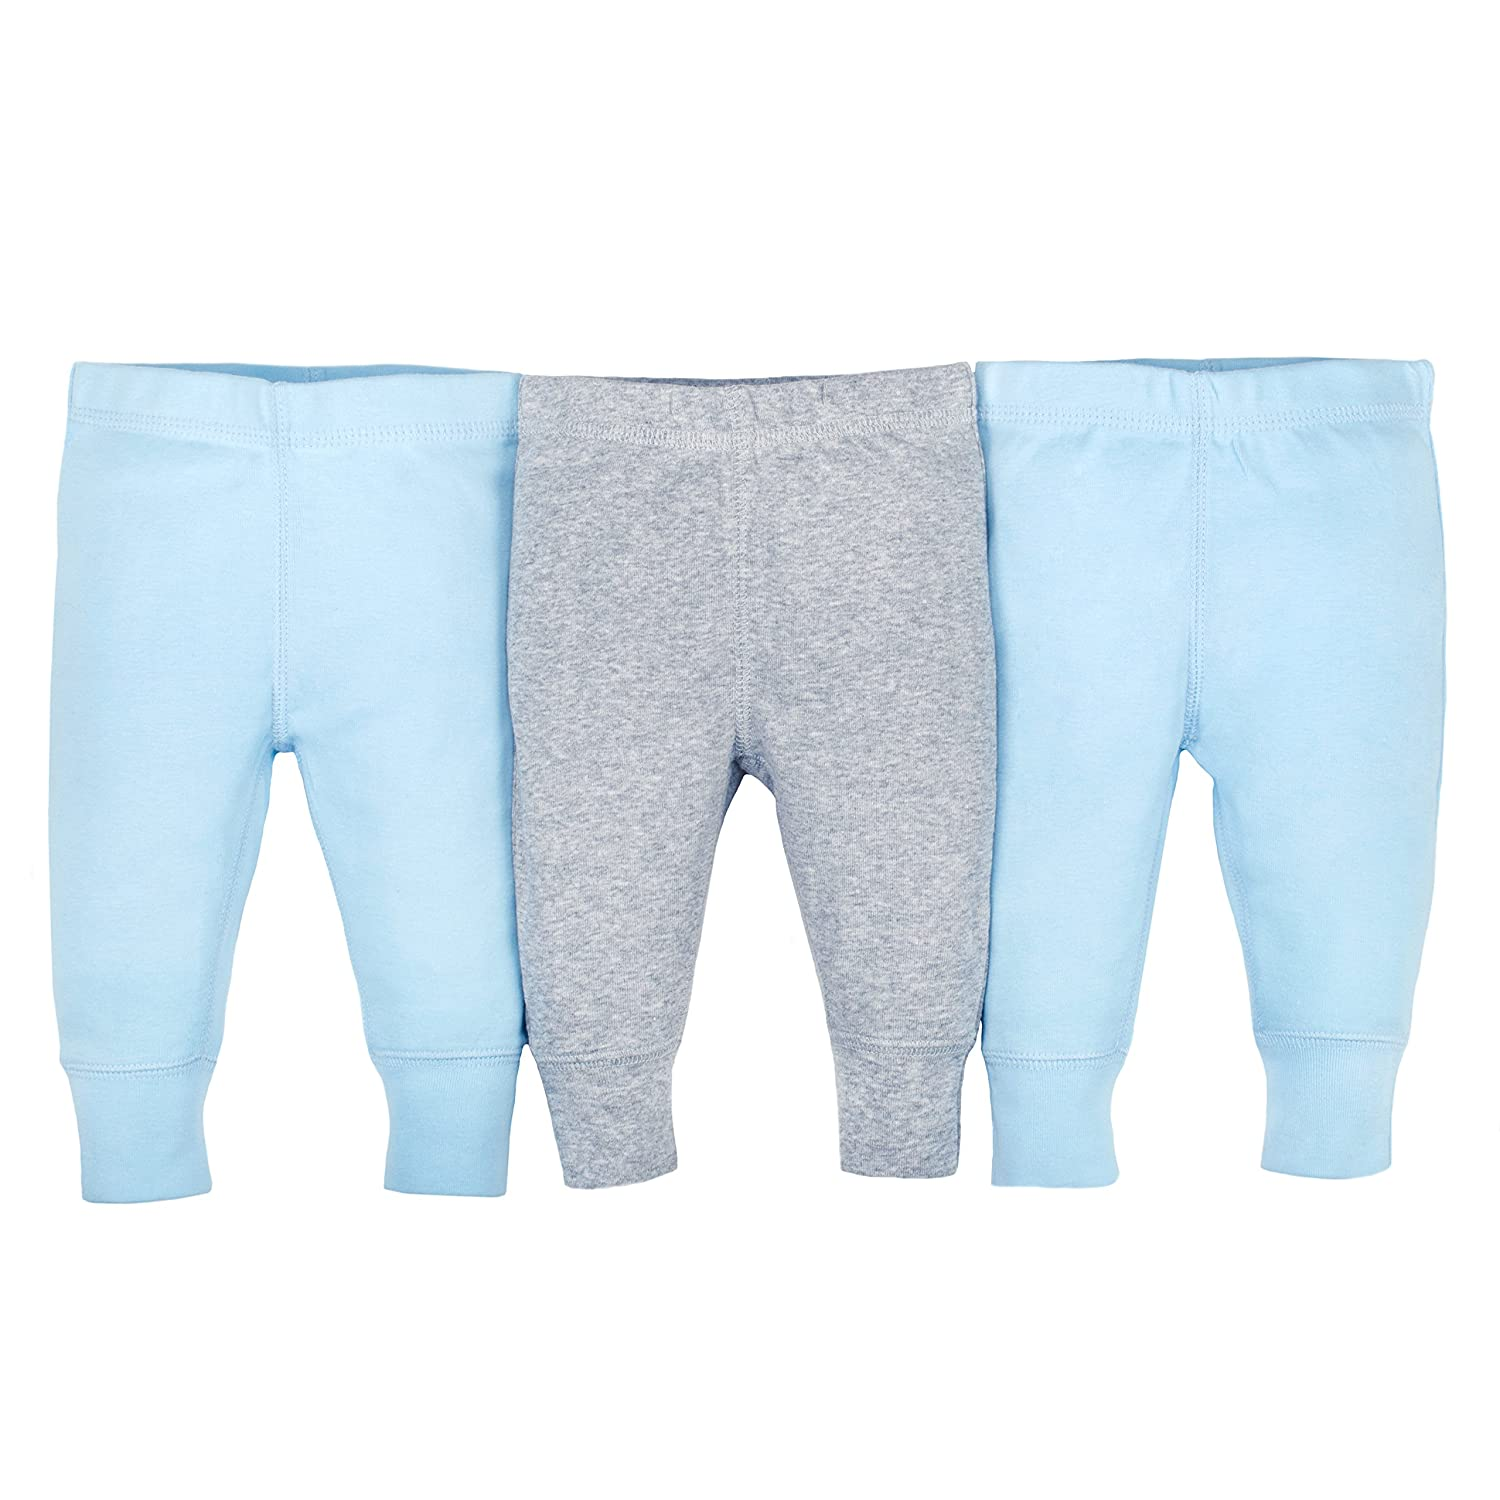 Gerber PANTS ベビーボーイズ Months PANTS 6 - 9 Months Gray/Light 9 Blue B076FJGMLM, IM-Trading:a144458a --- sharoshka.org